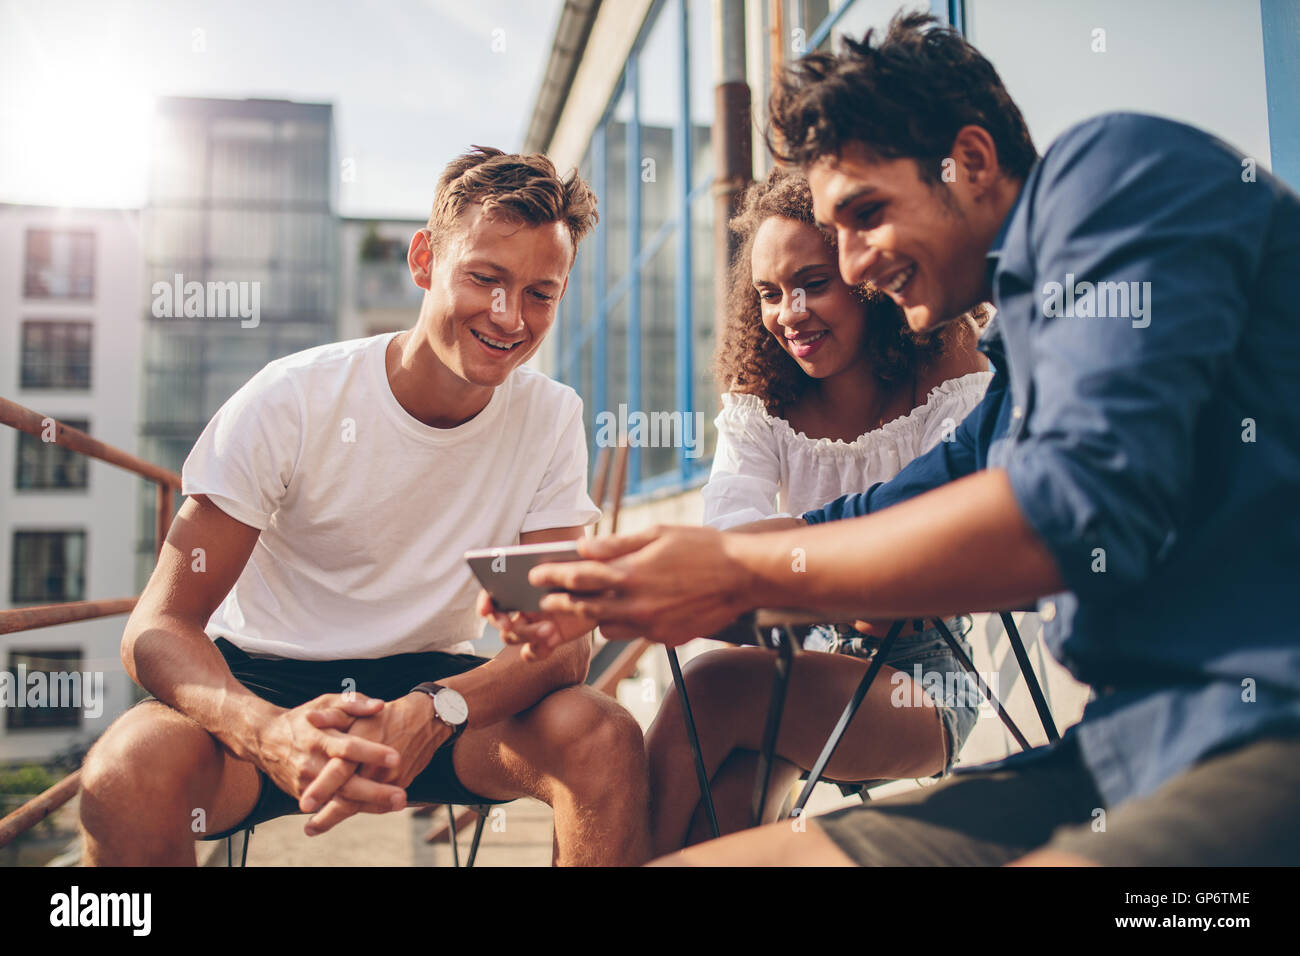 Group of people watching video on the mobile phone while sitting at outdoor cafe. Three young friends sitting outdoors - Stock Image